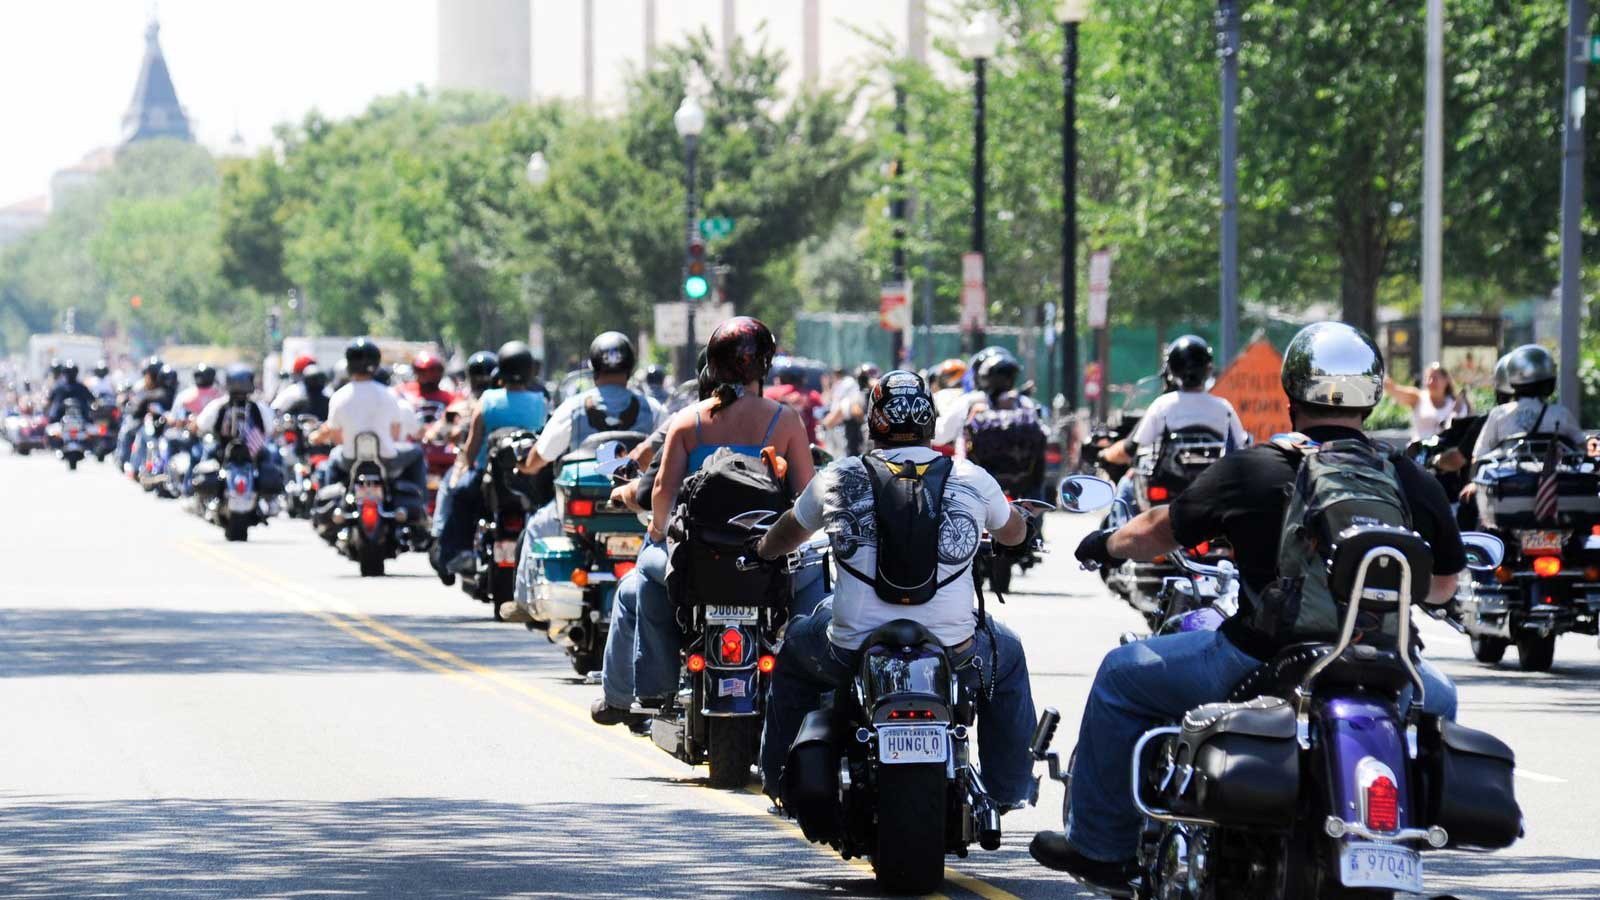 10 Motorcycle Rallies Plus One We're Hoping To Still Get To This Year